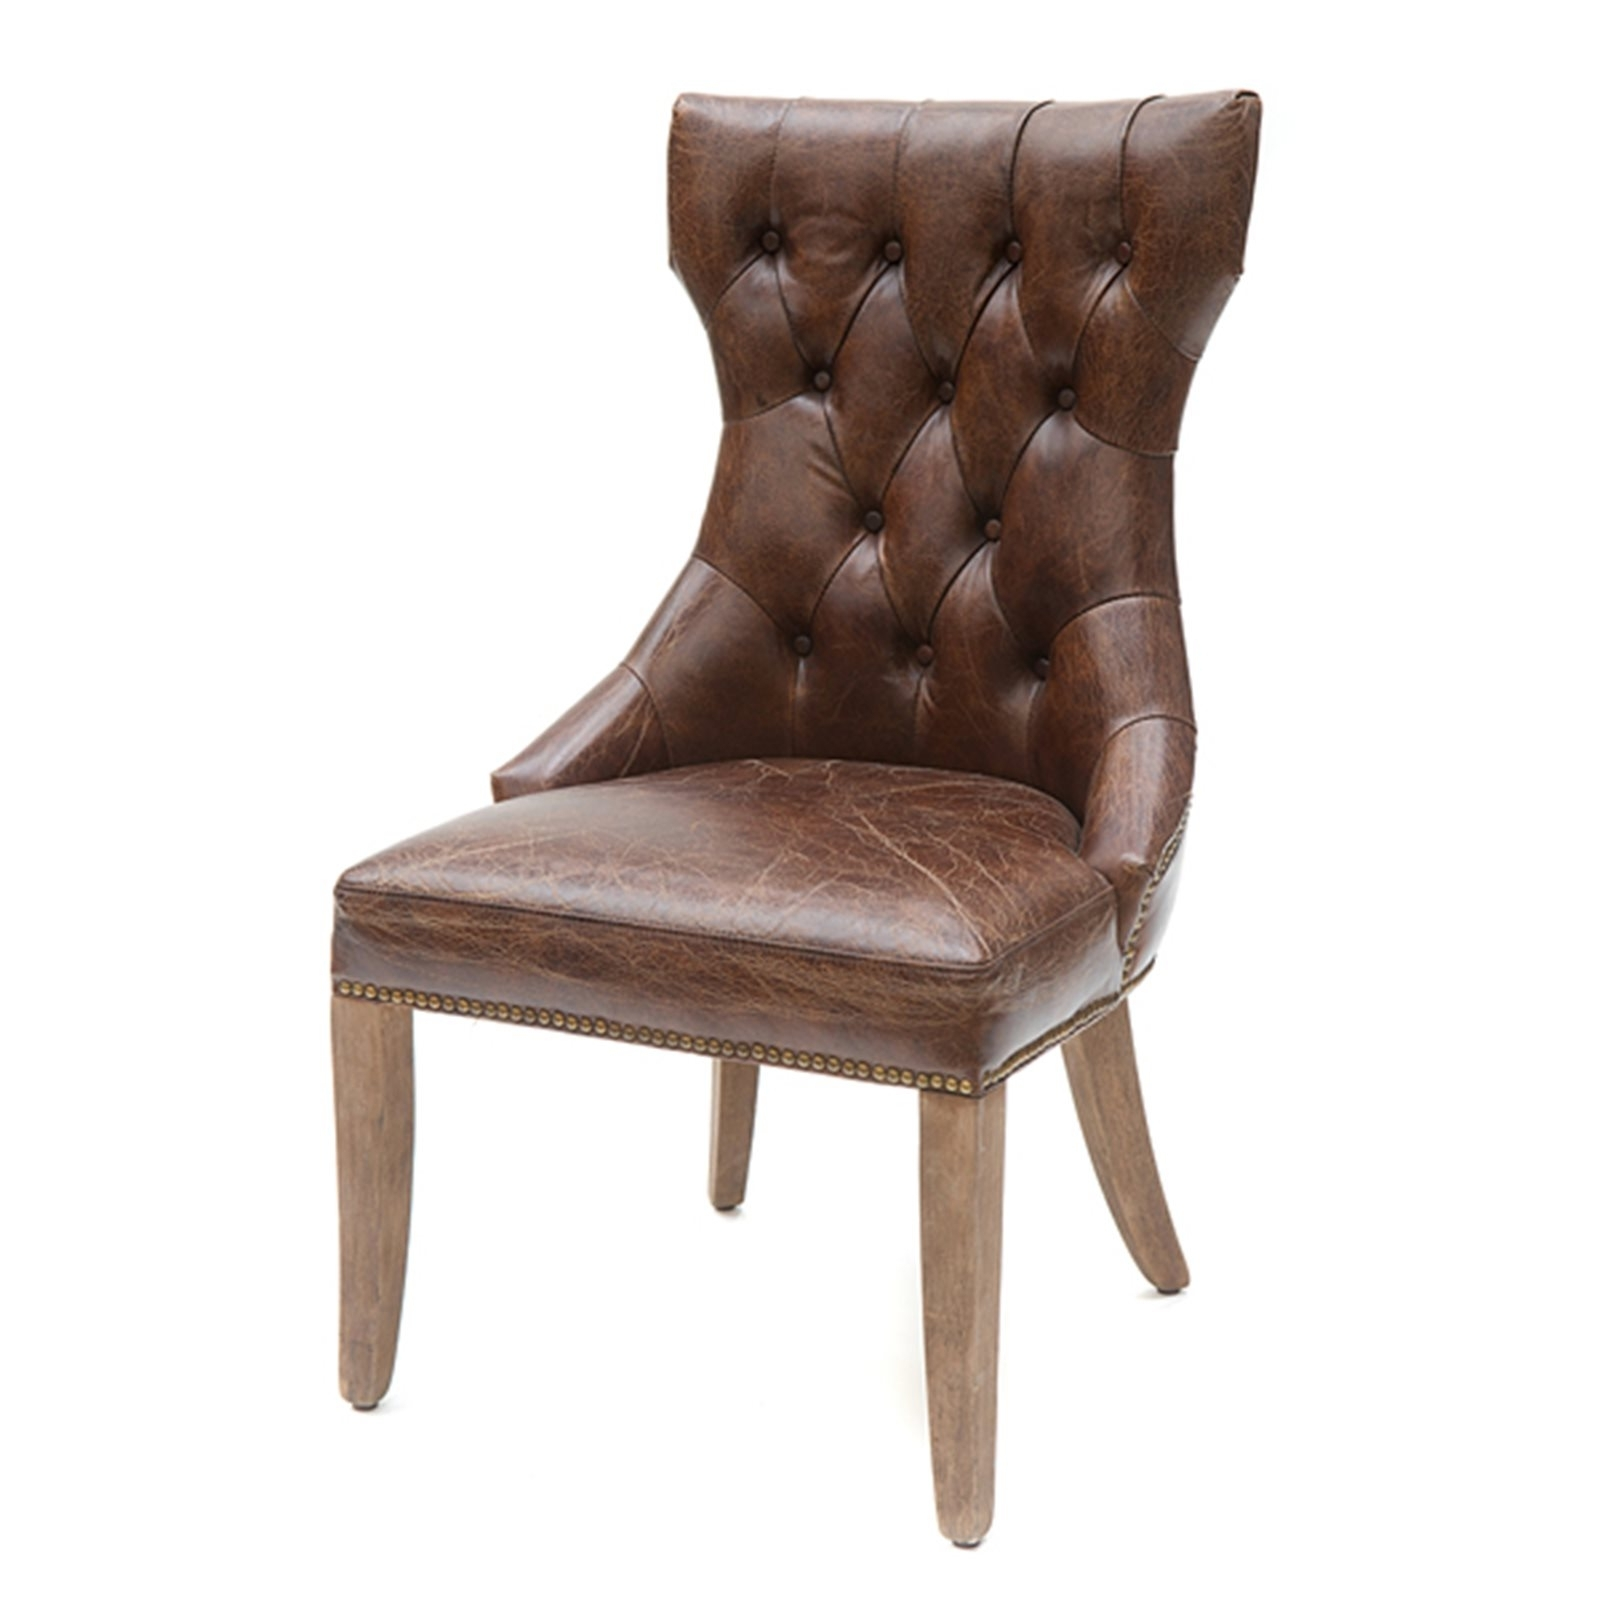 Button Back Dining Chairs Inside Well Known Loughton Button Back Leather Dining Chair (Gallery 15 of 25)